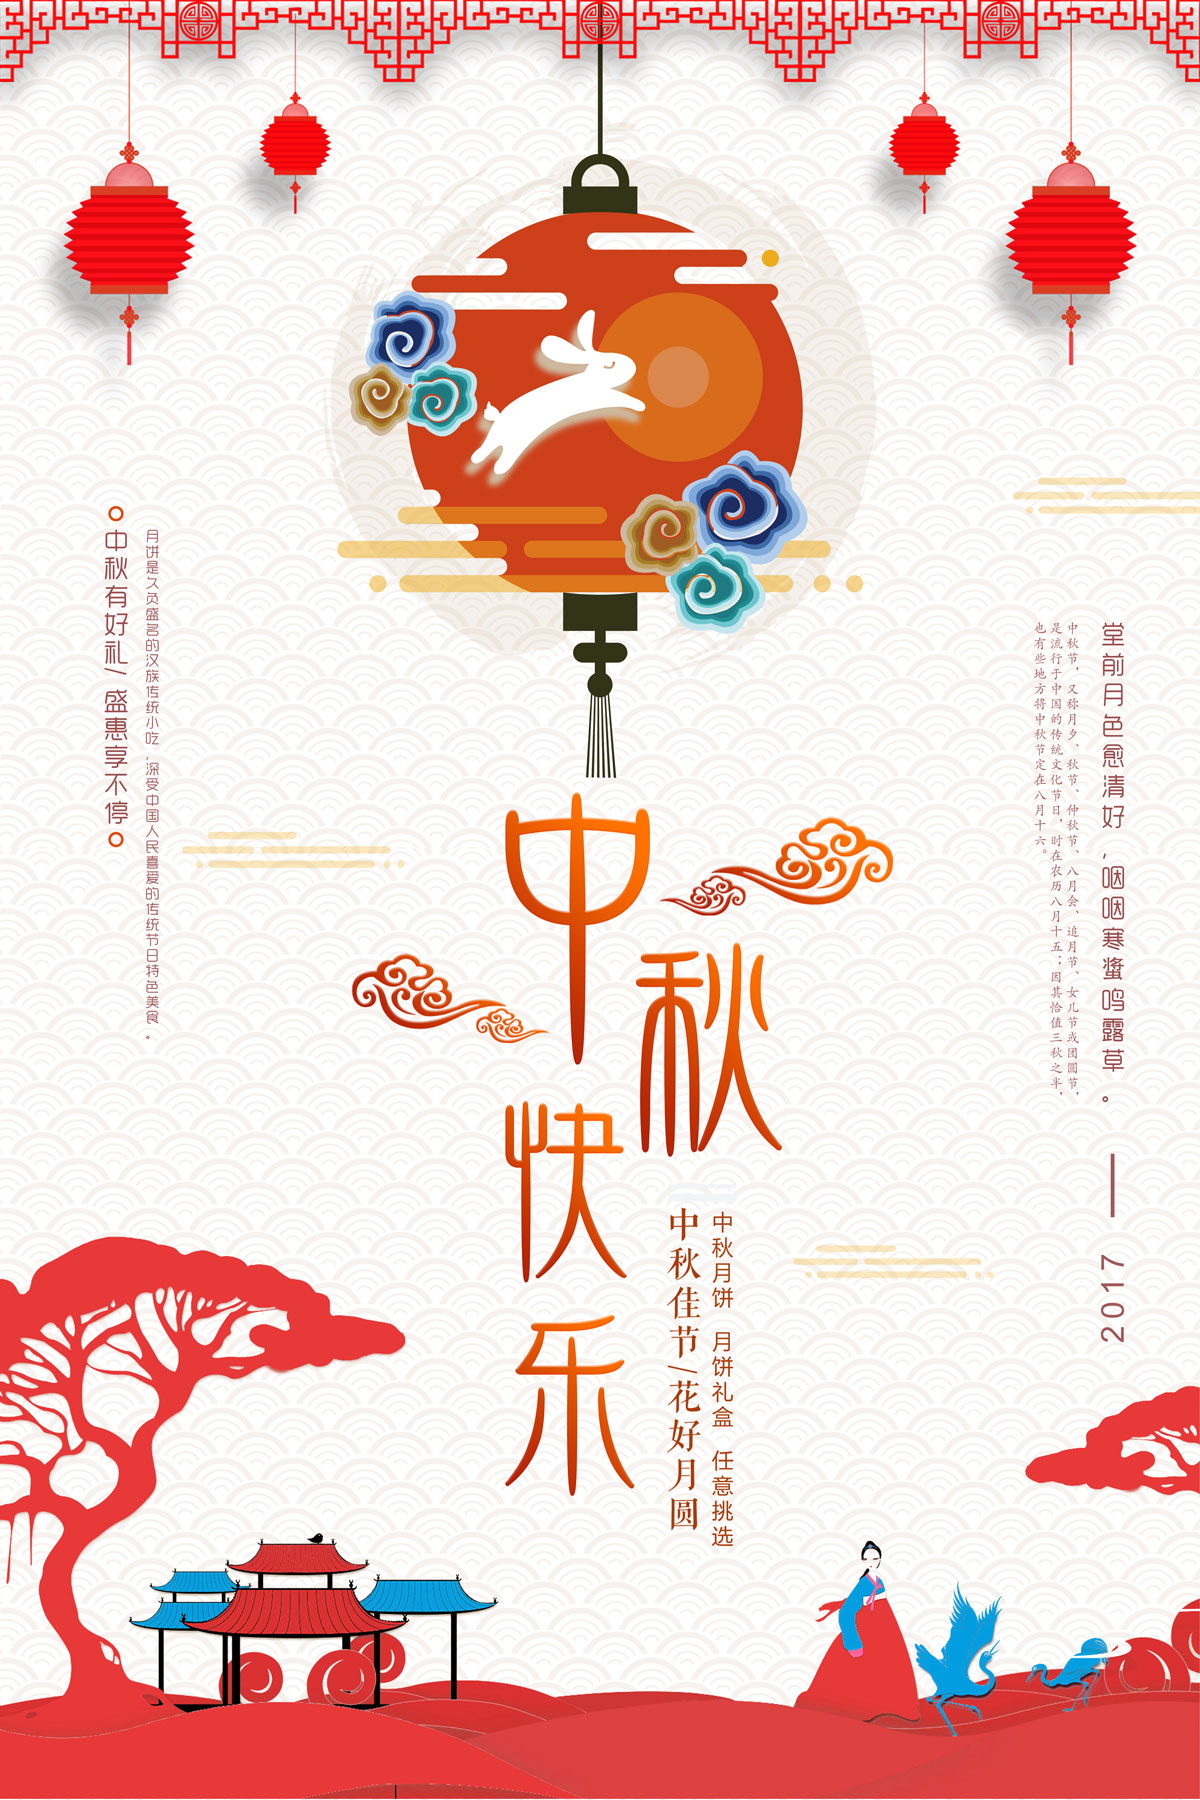 chinesefontdesign.com 2017 09 23 12 15 54 615247 2017 Happy Mid Autumn Festival   design posters China PSD File Free Download #.2 Chinese Mid Autumn Festival